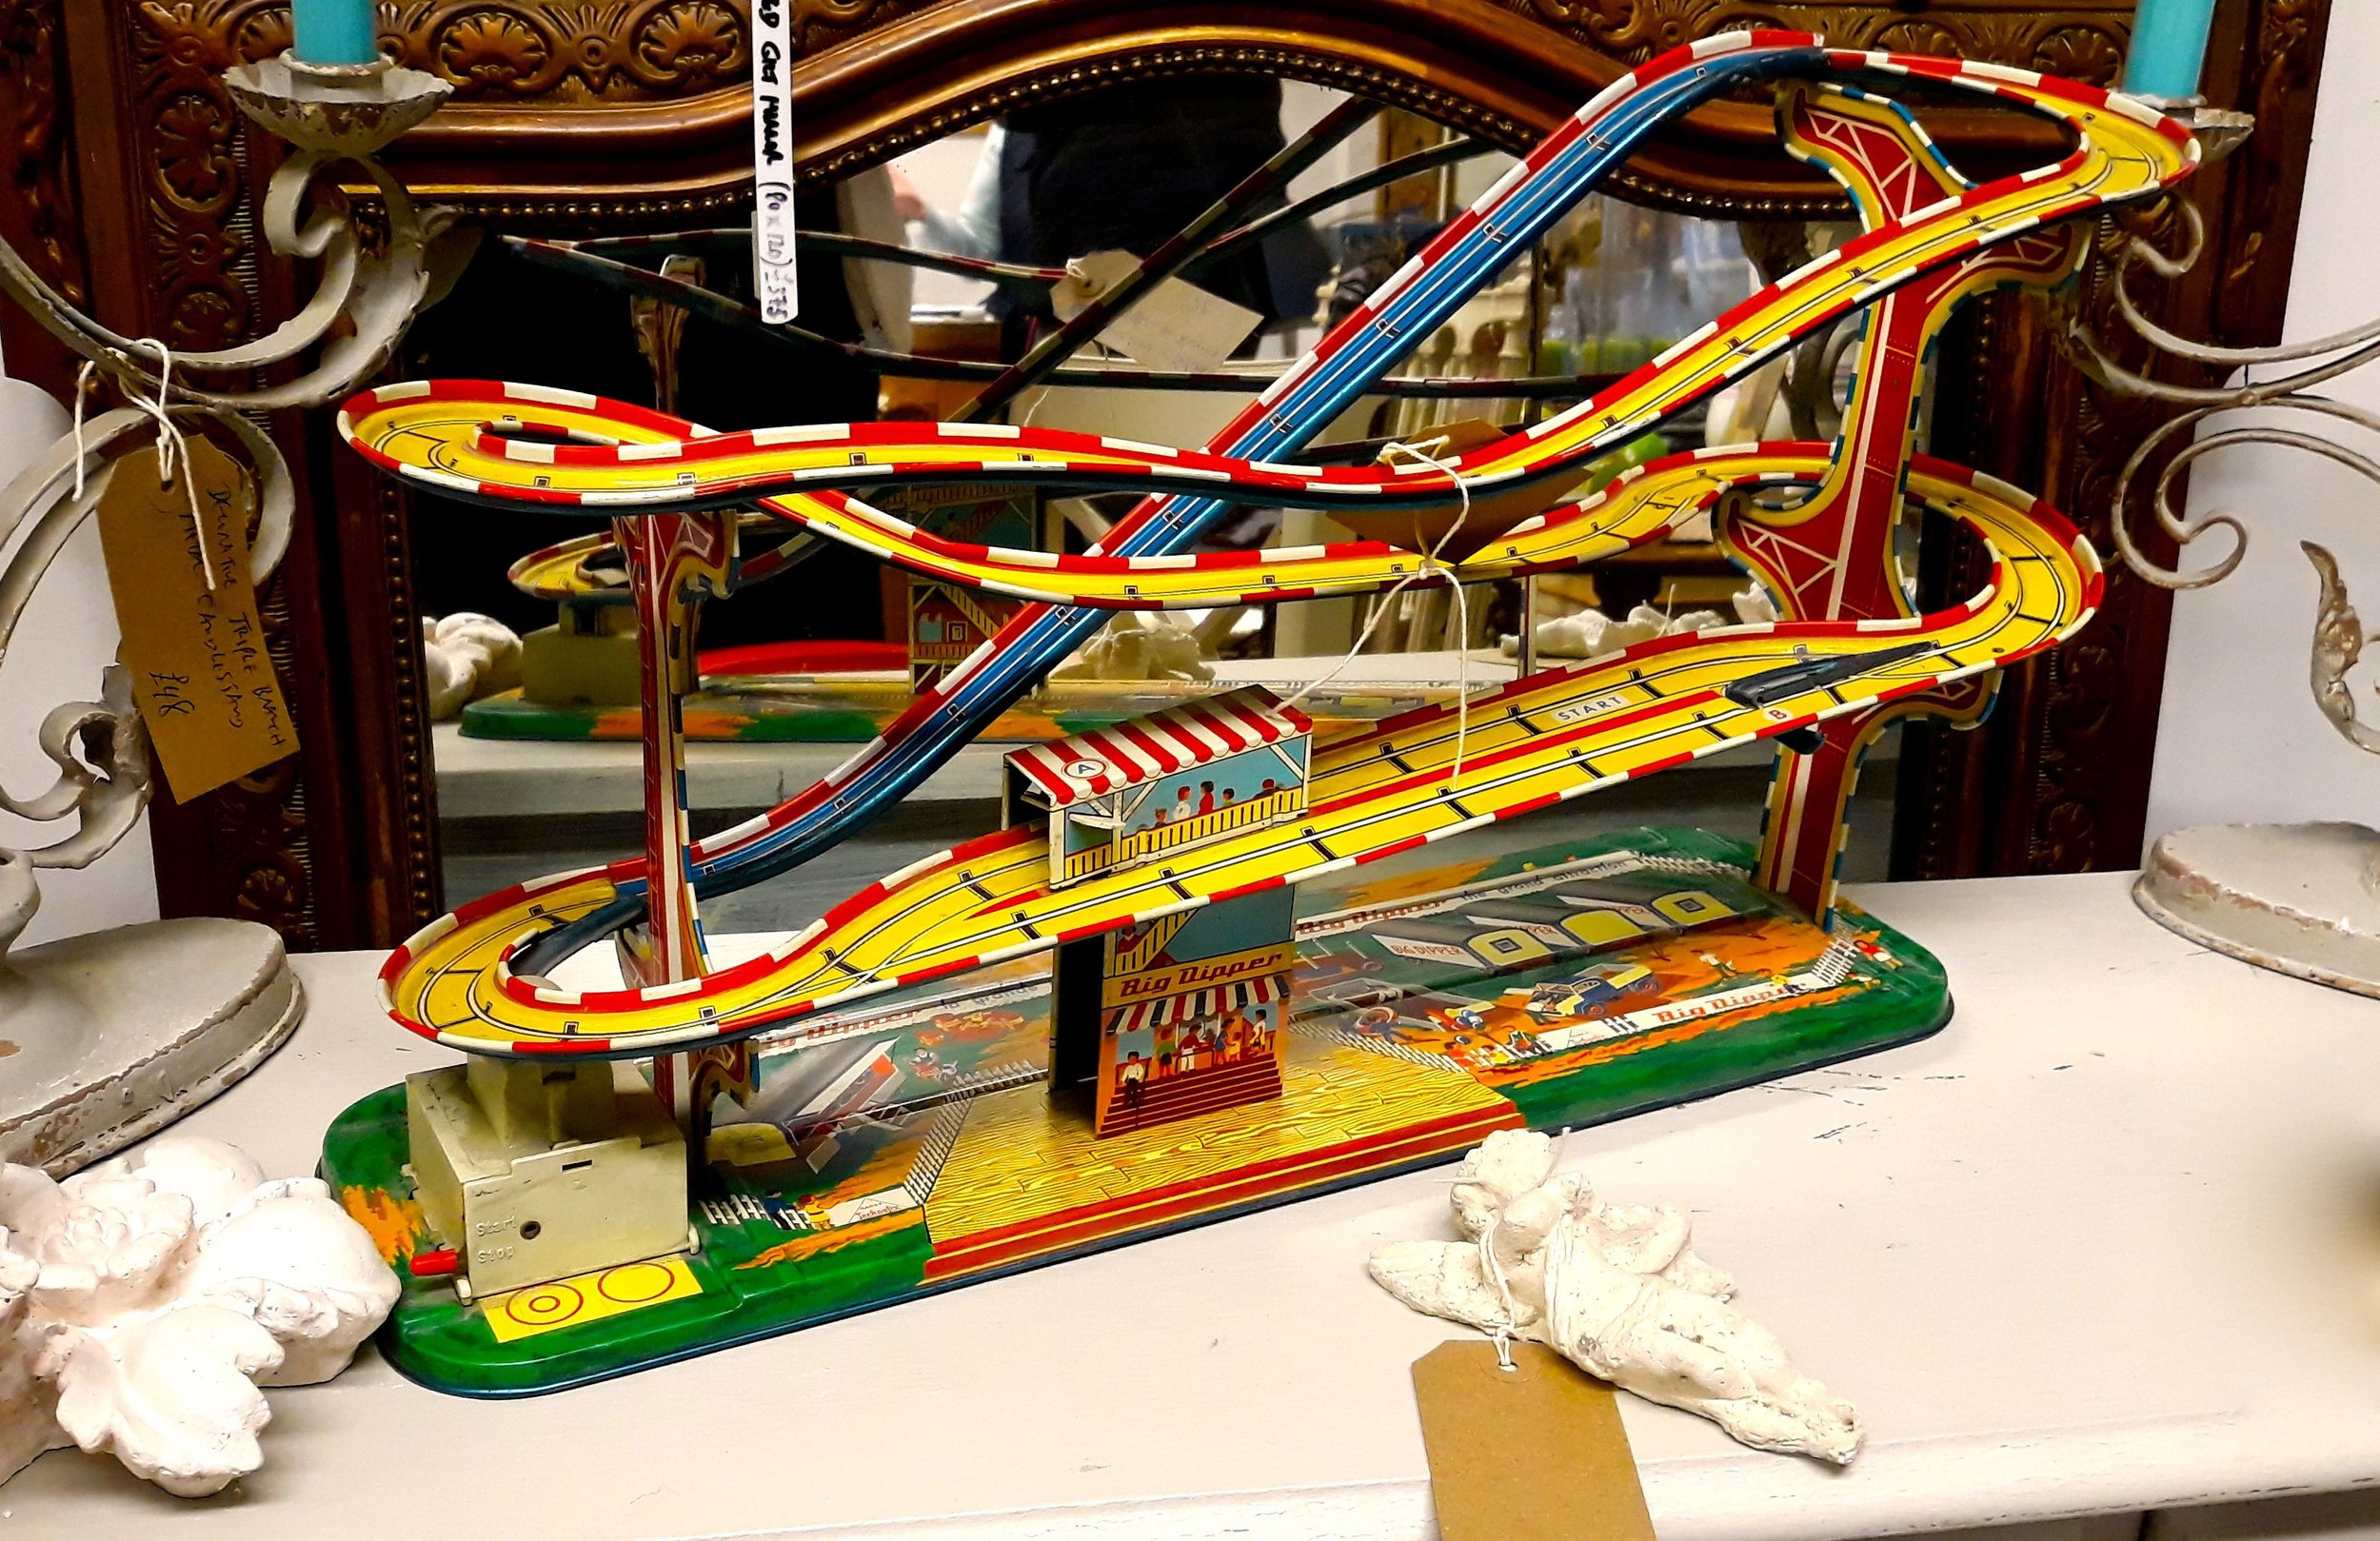 A toy car helter skelter track